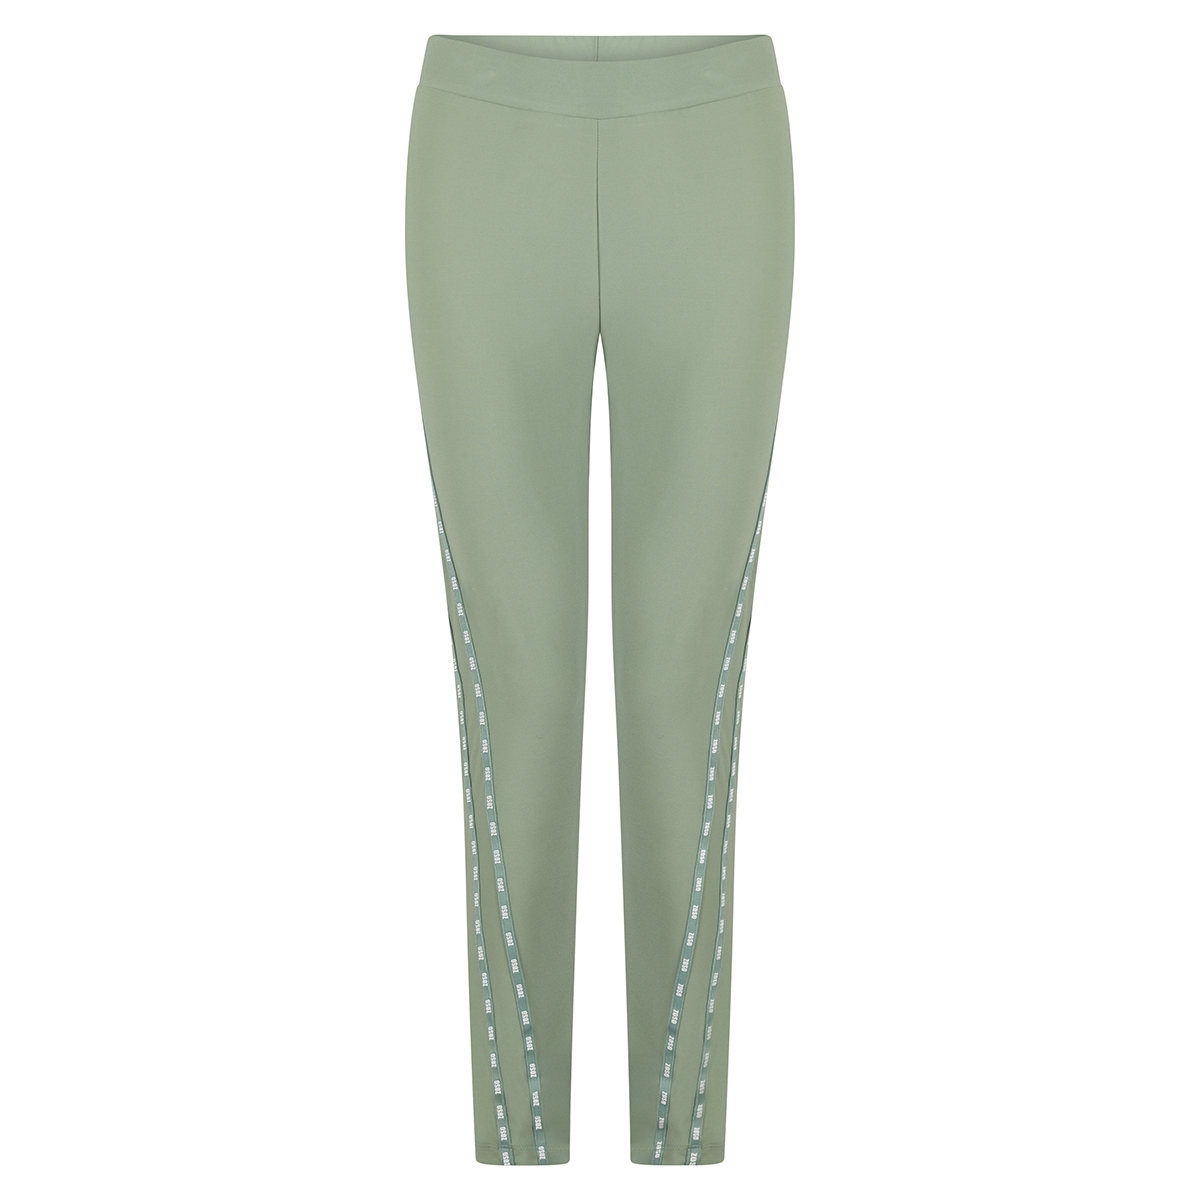 beauty legging 192 zoso legging sage